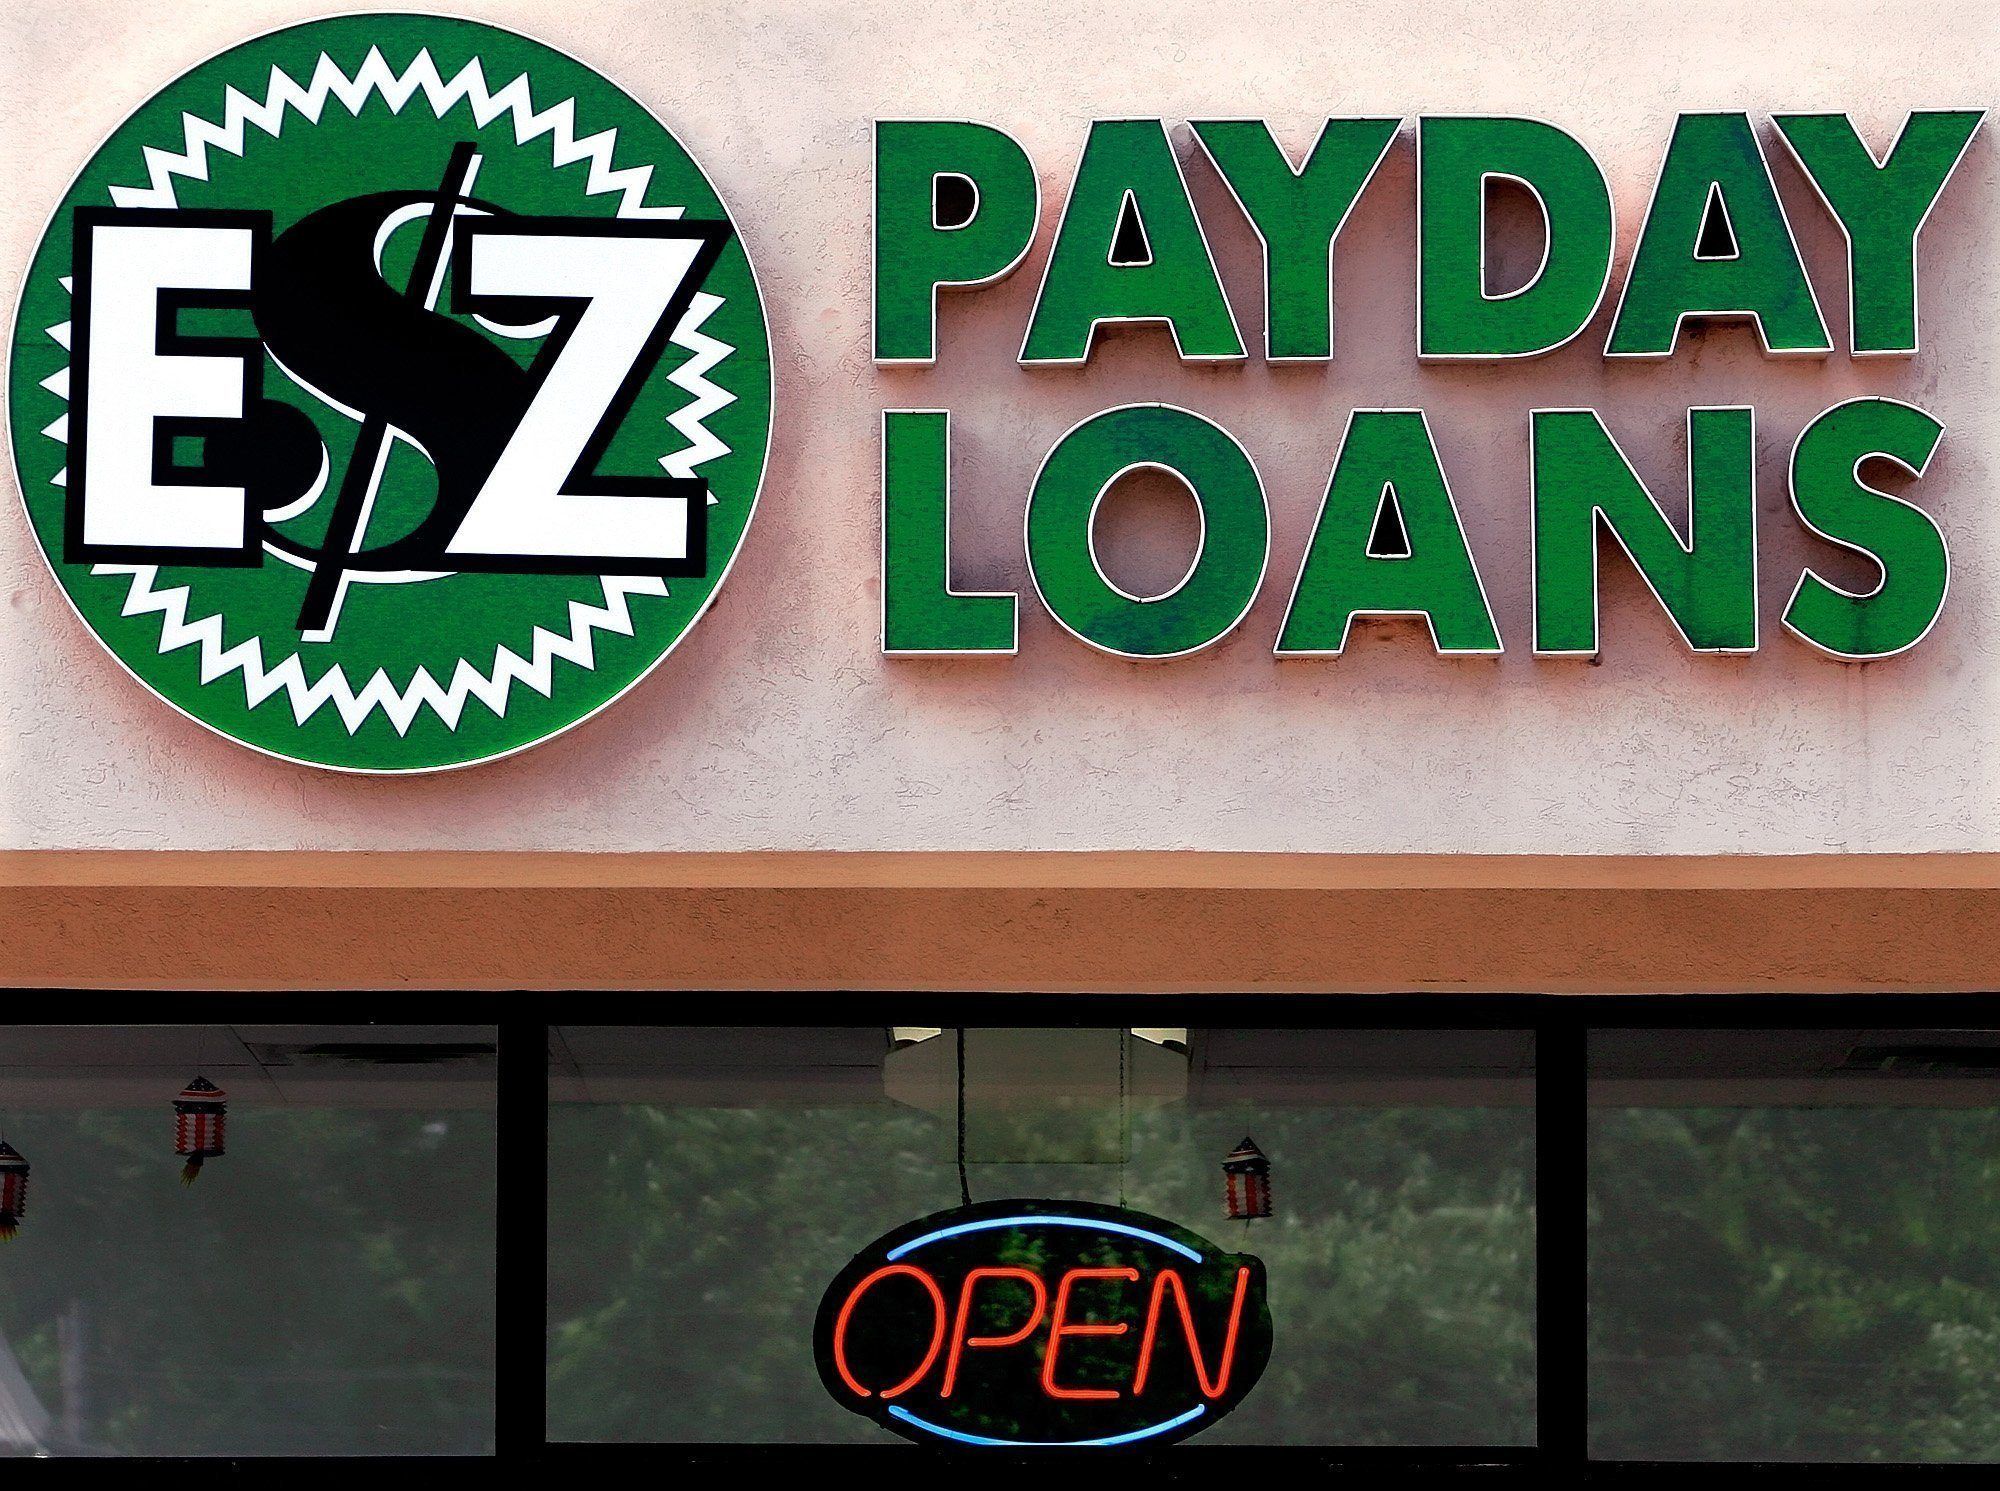 Payday loans new regulations photo 2